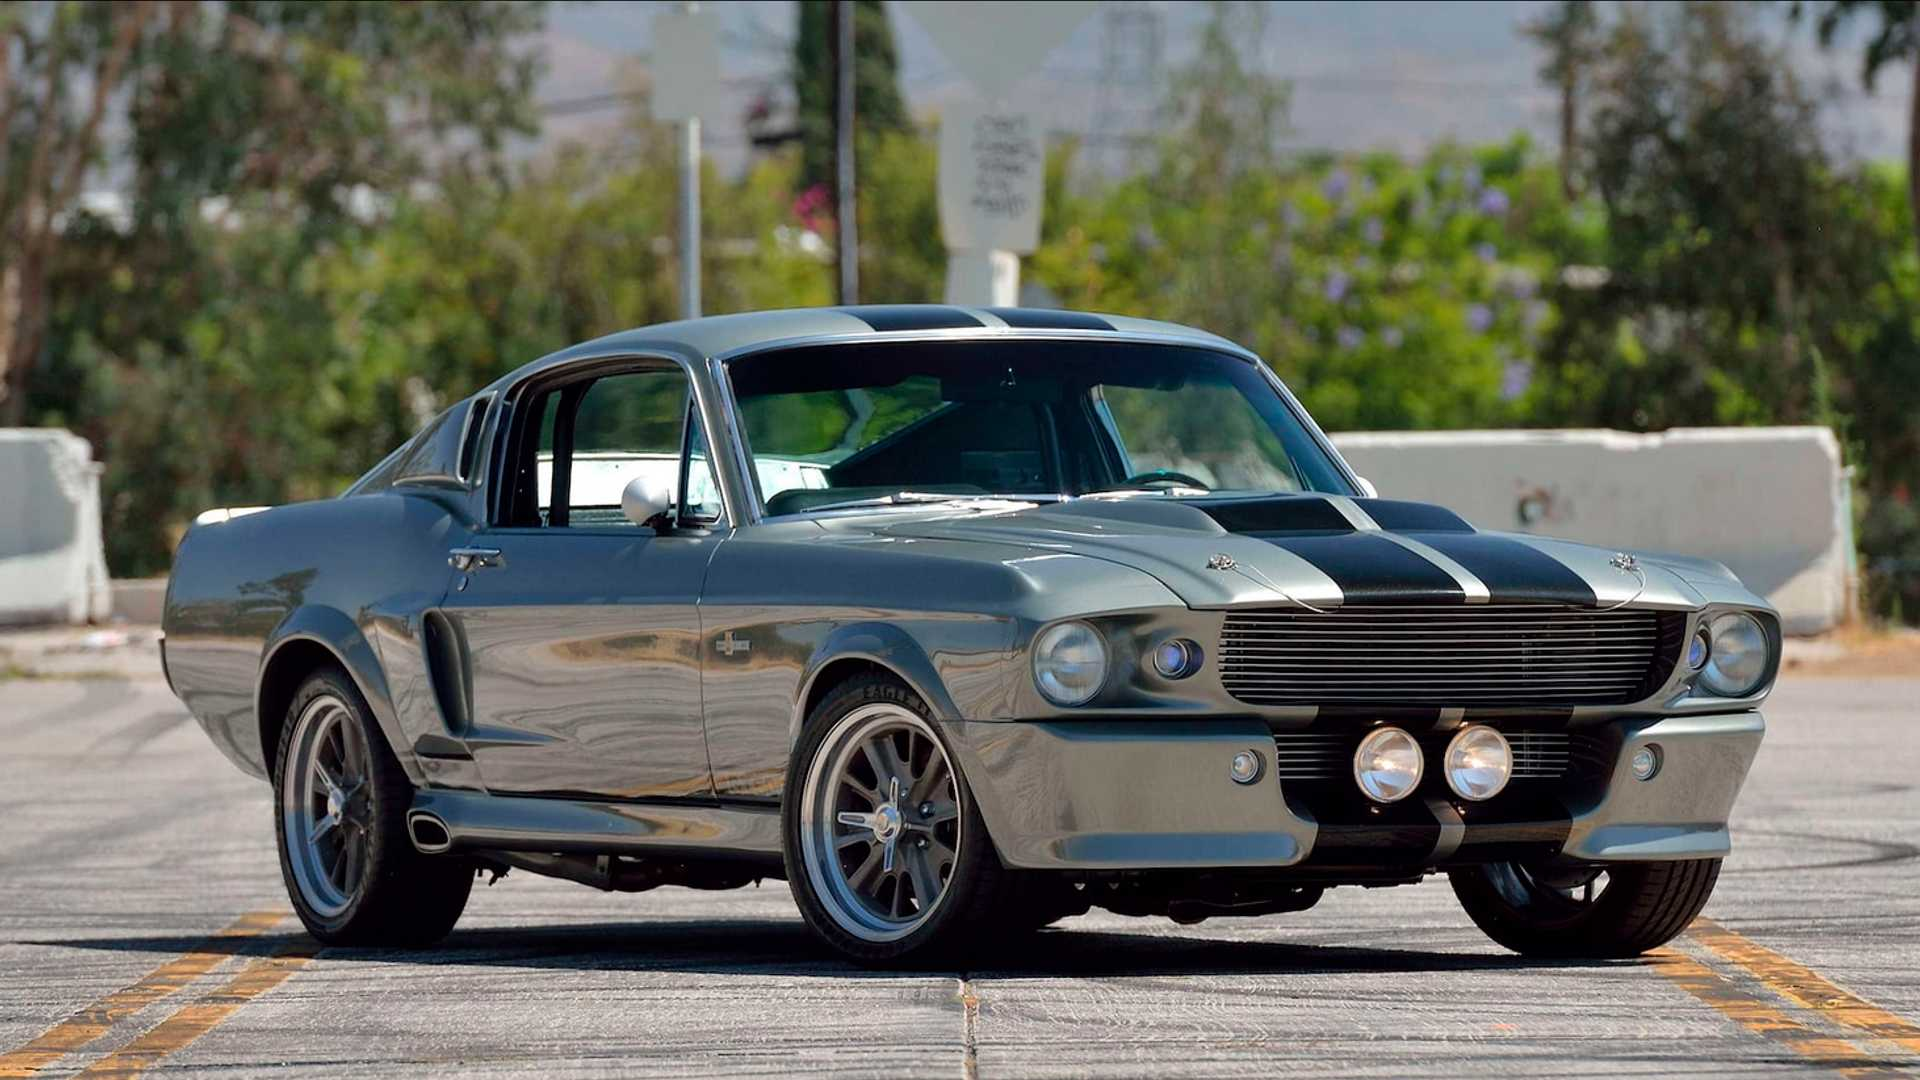 1967-ford-mustang-hero-car-from-gone-in-